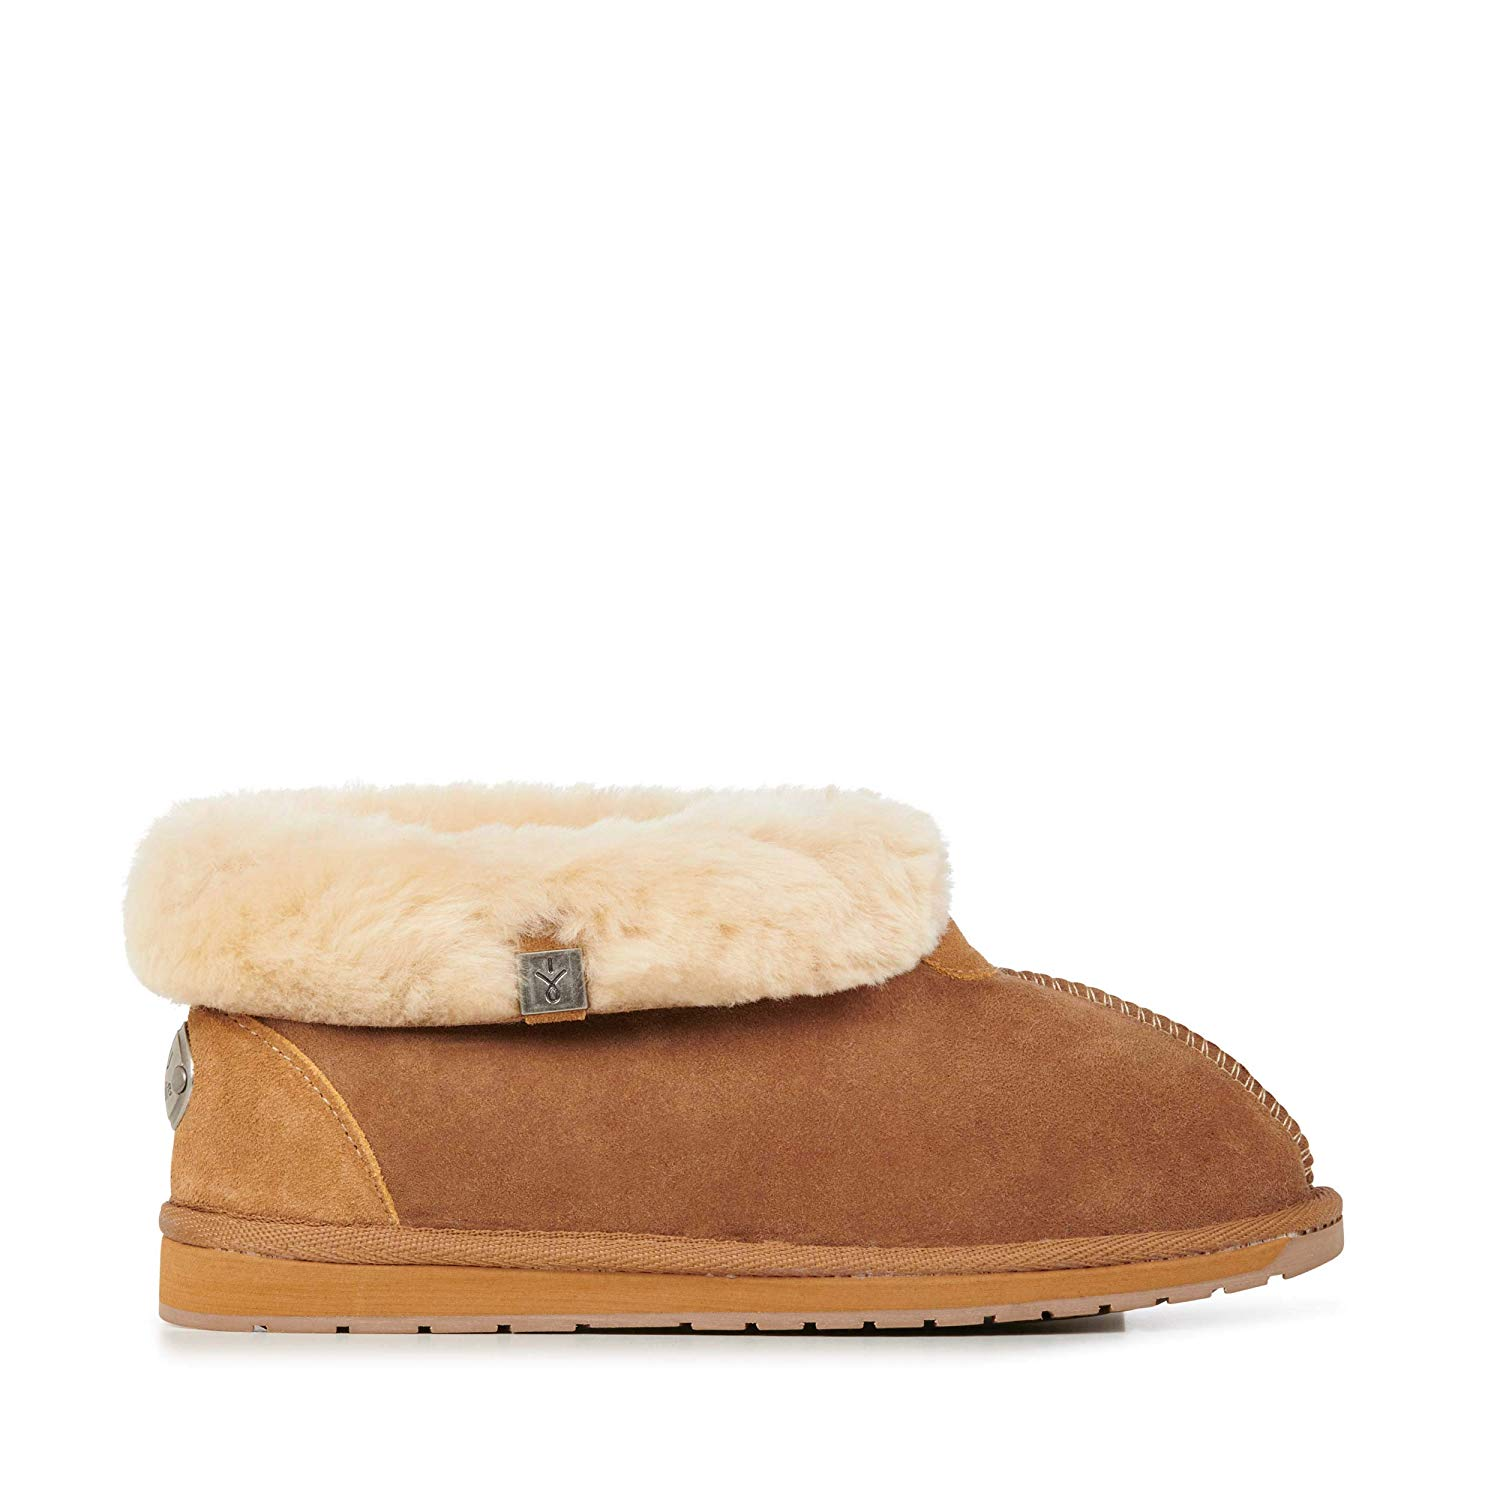 d5352bce98 Get Quotations · EMU Australia Womens Slippers Platinum Albany Sheepskin  Slipper